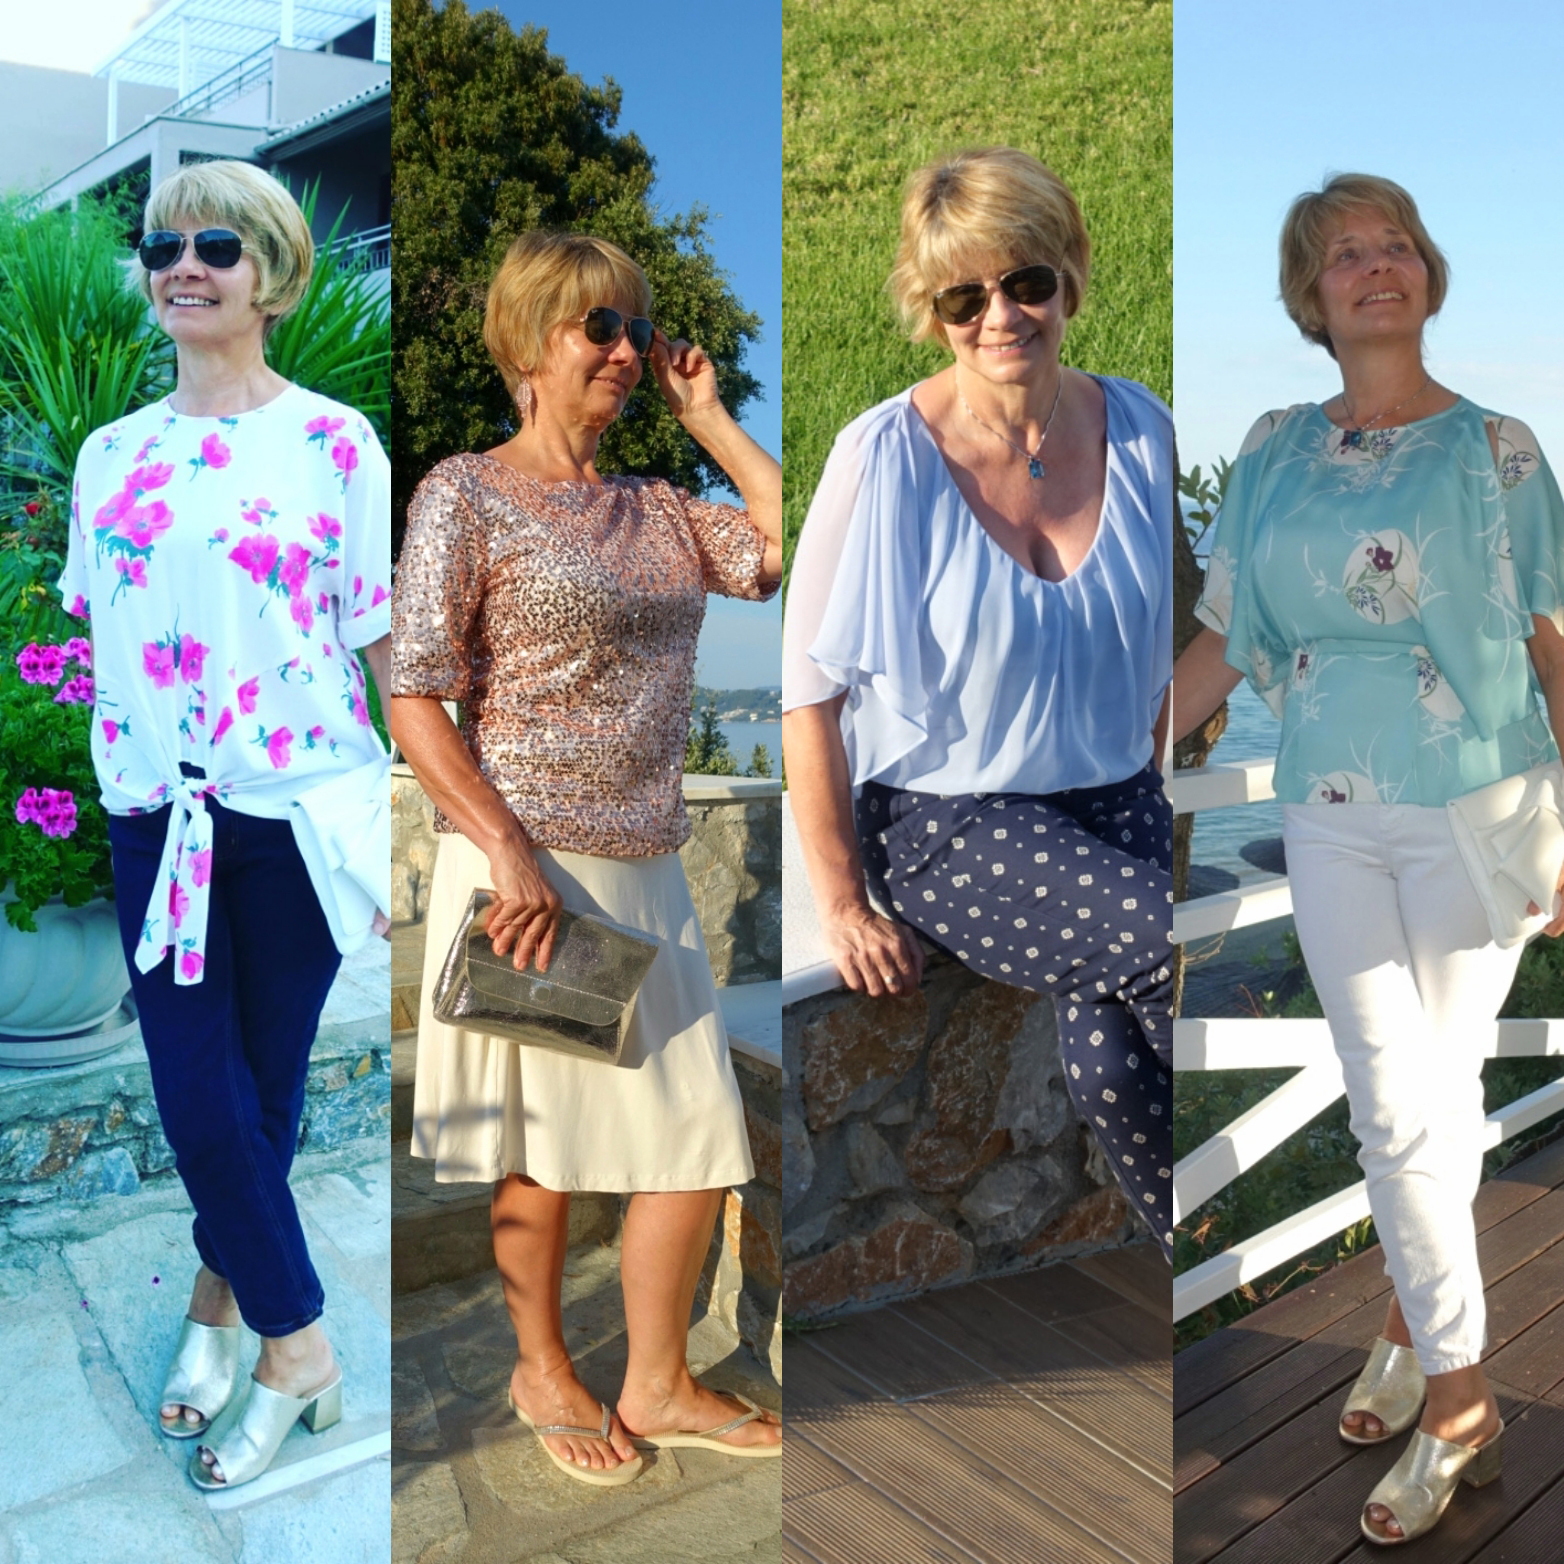 Is This Mutton's Gail Hanlon in outfits worn on holiday in summer 2017